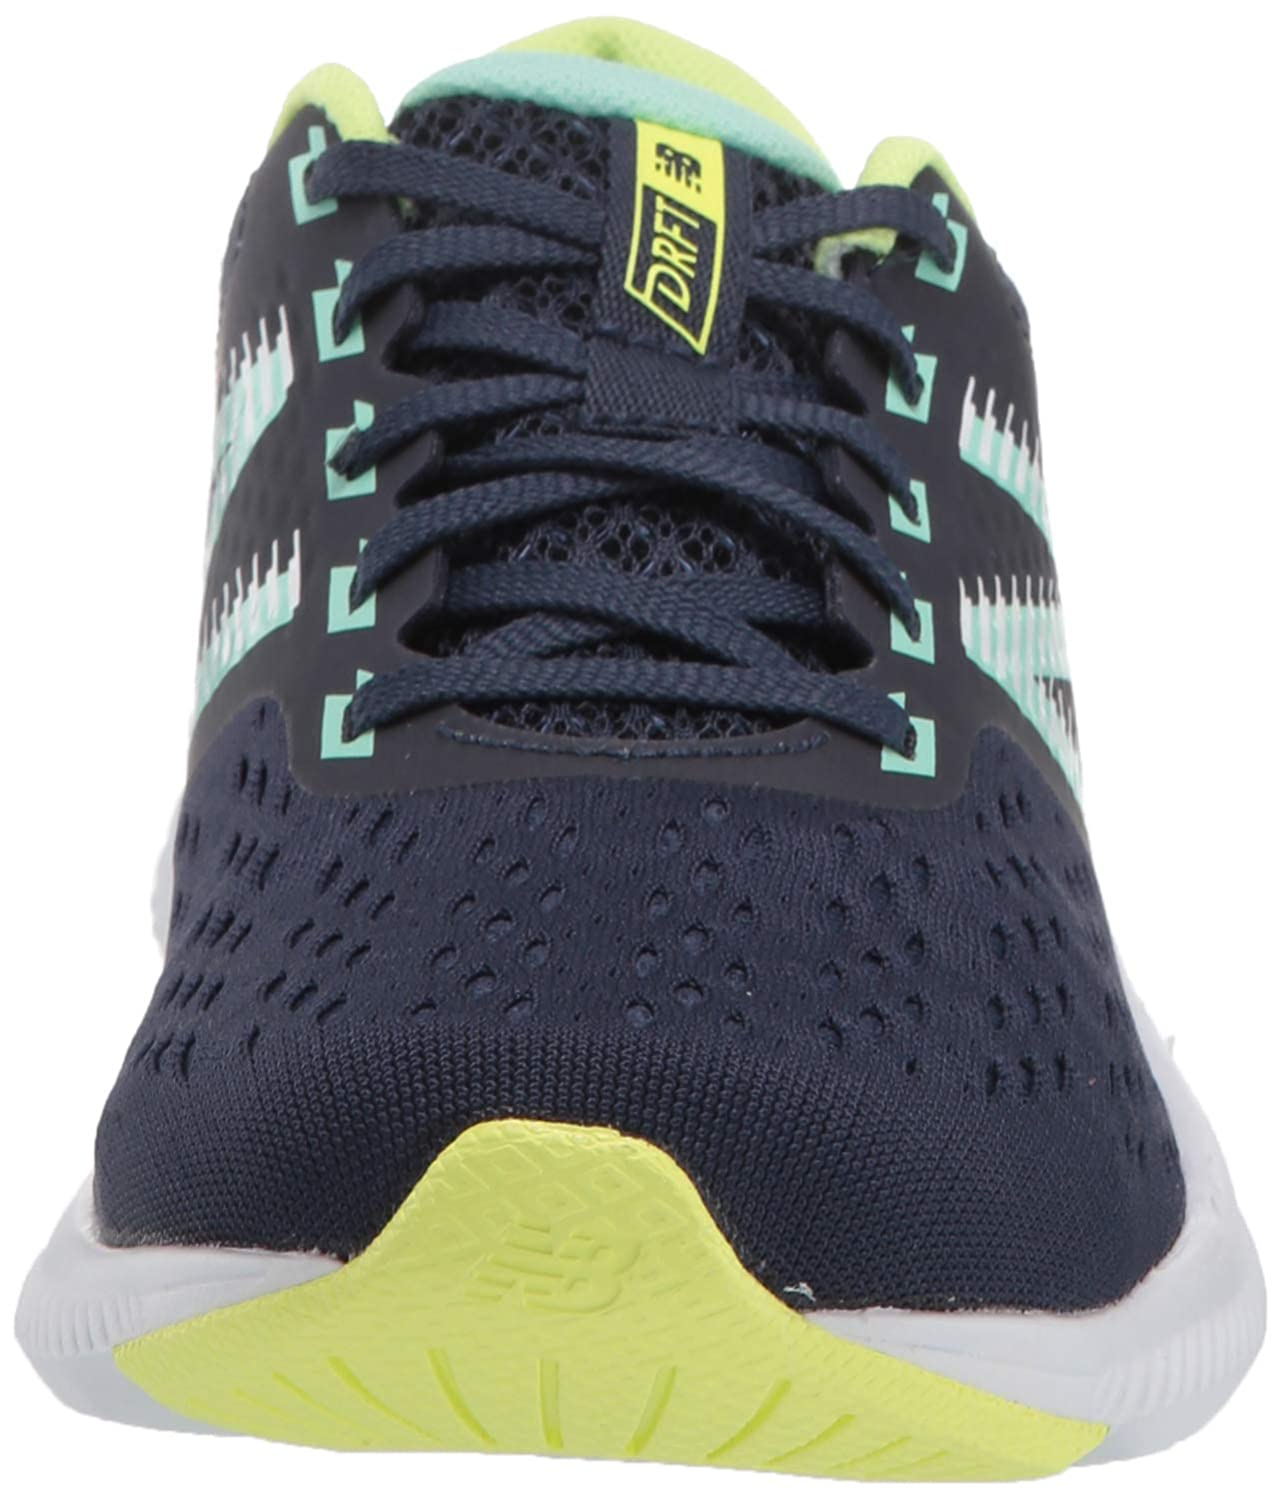 New Balance Womens Draft V1 Running Shoe: Amazon.es: Zapatos y complementos